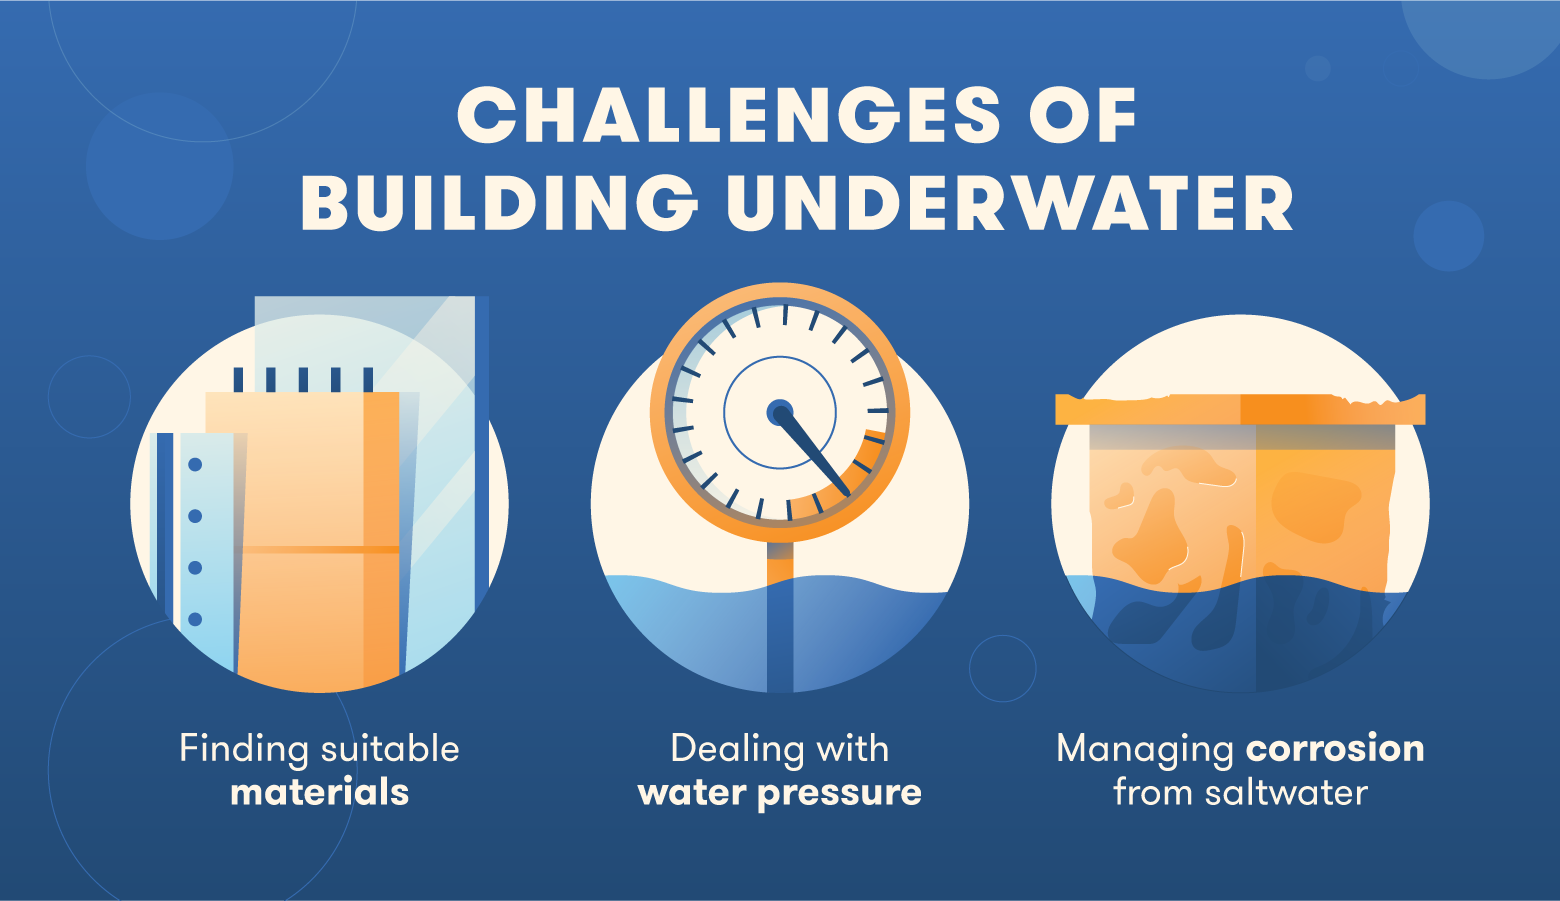 Some of the challenges of building underwater include finding suitable materials, dealing with water pressure, and managing corrosion from seawater.